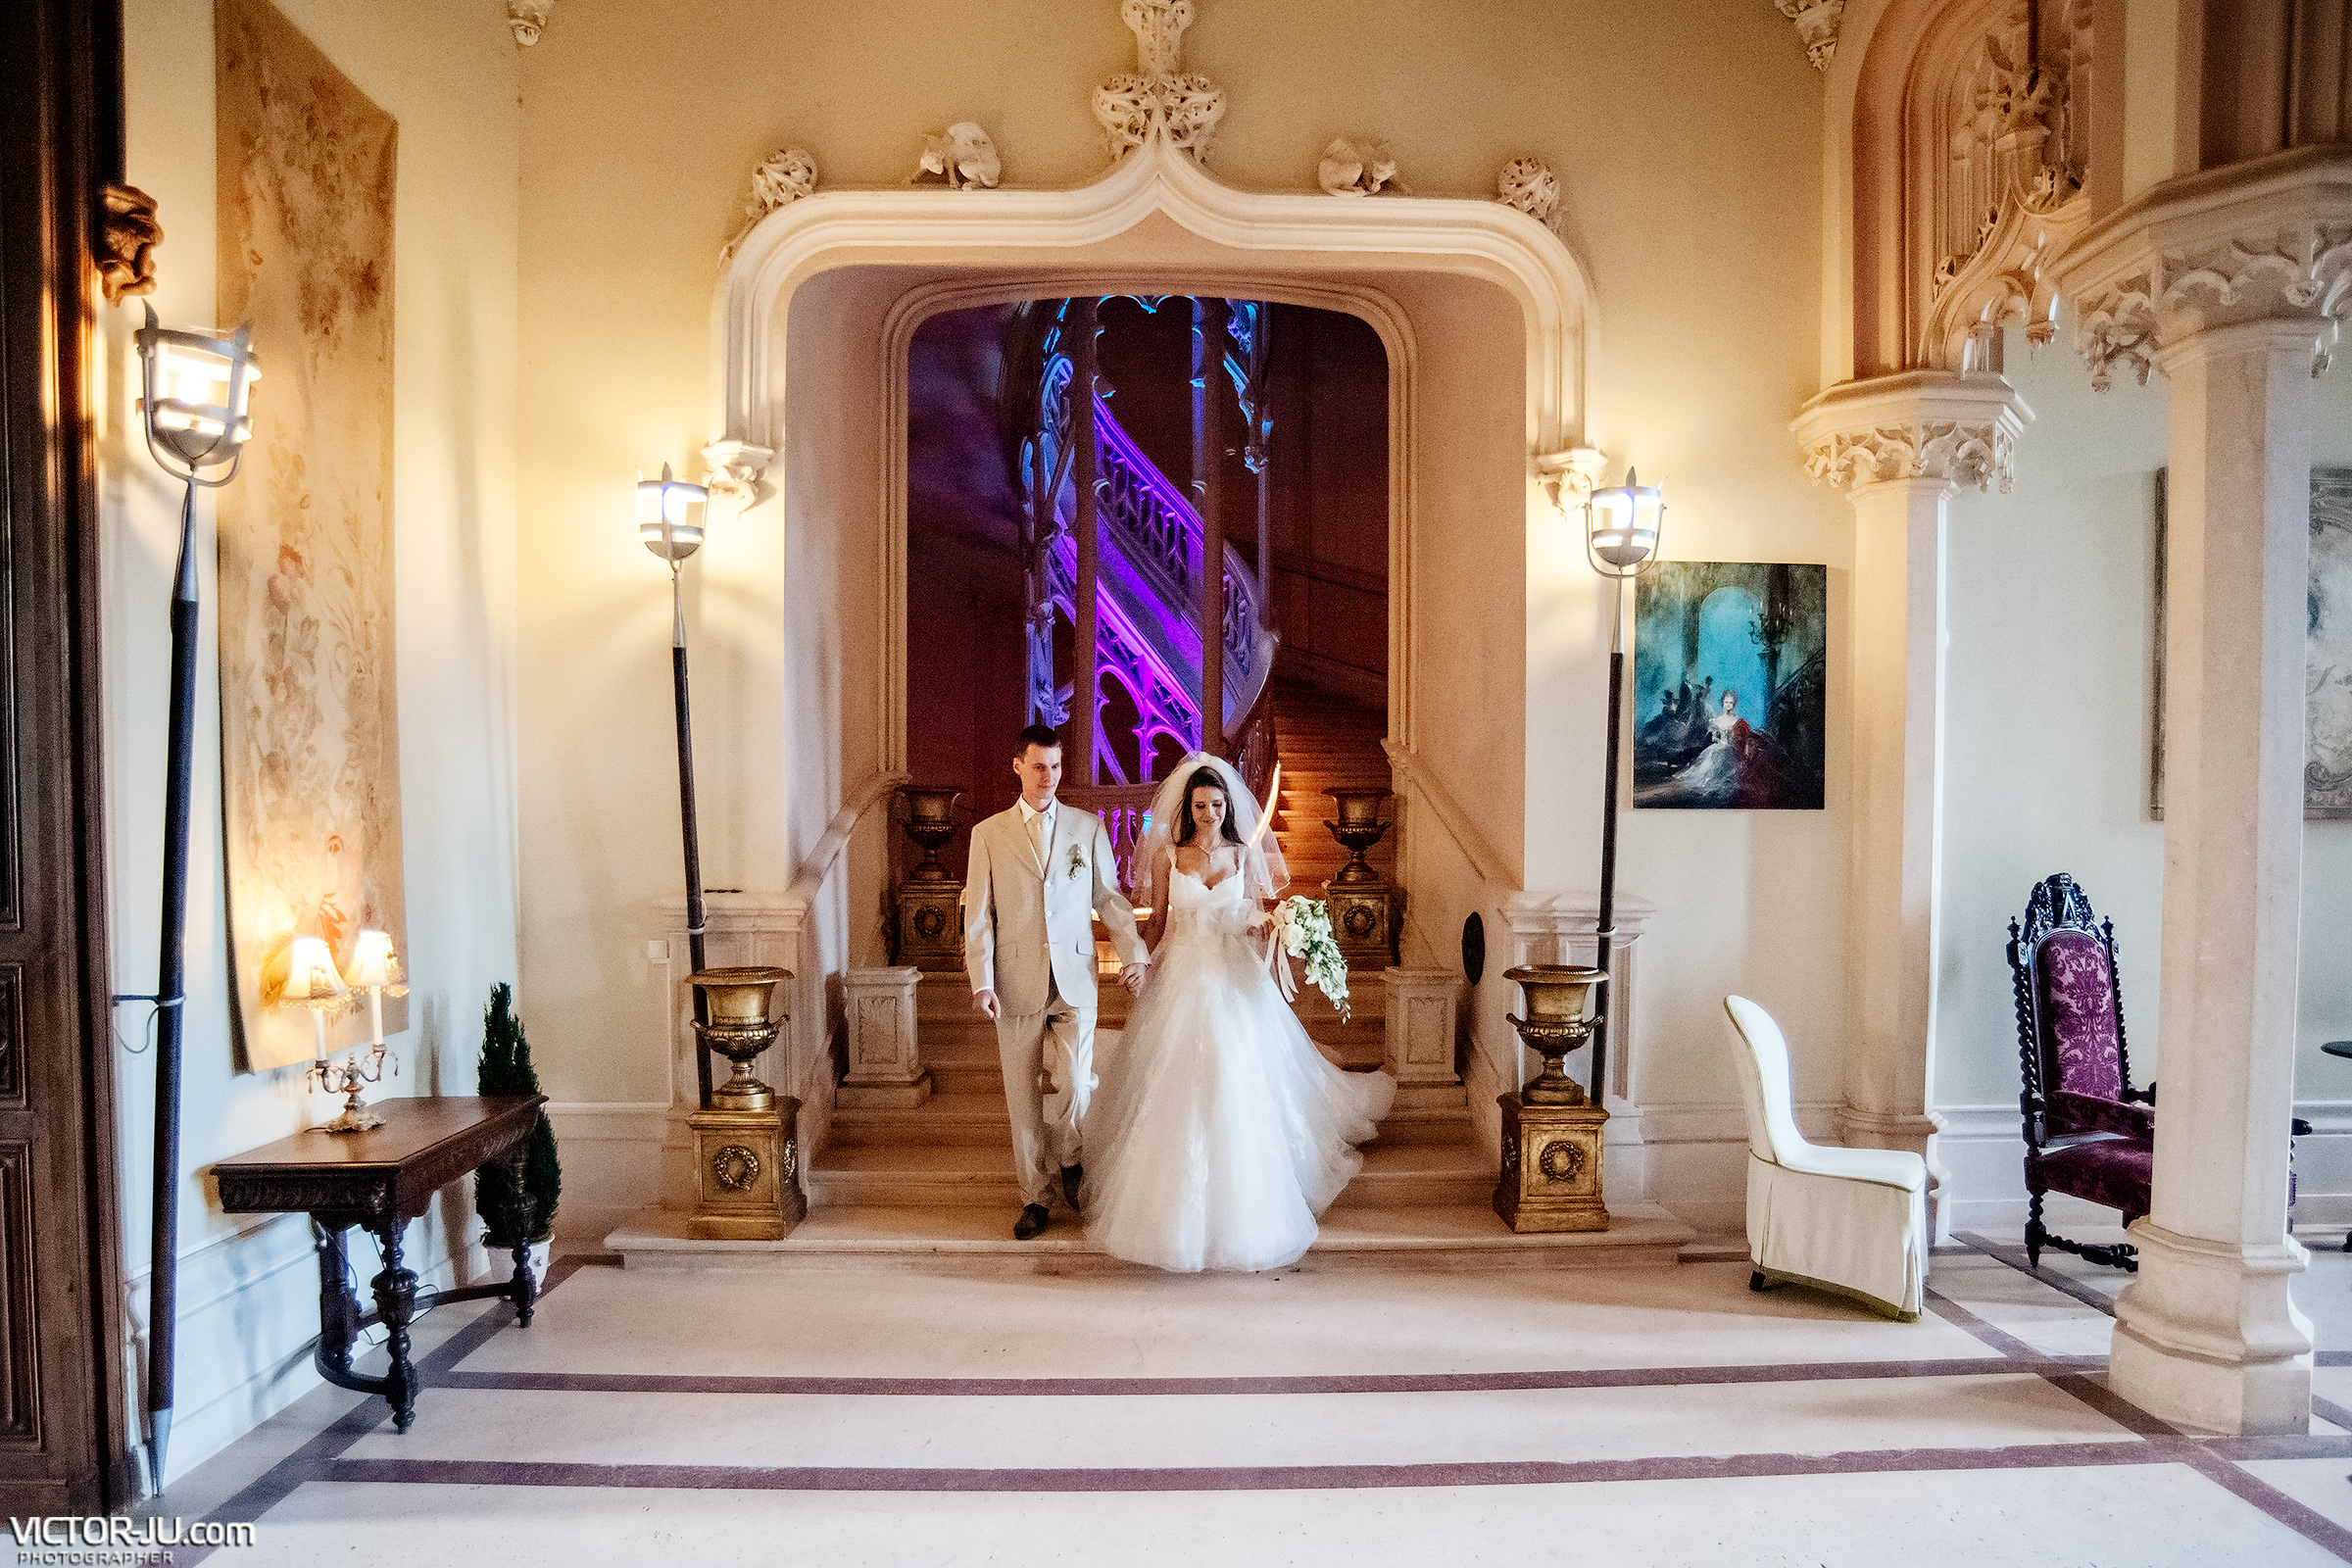 Wedding in the castle of France